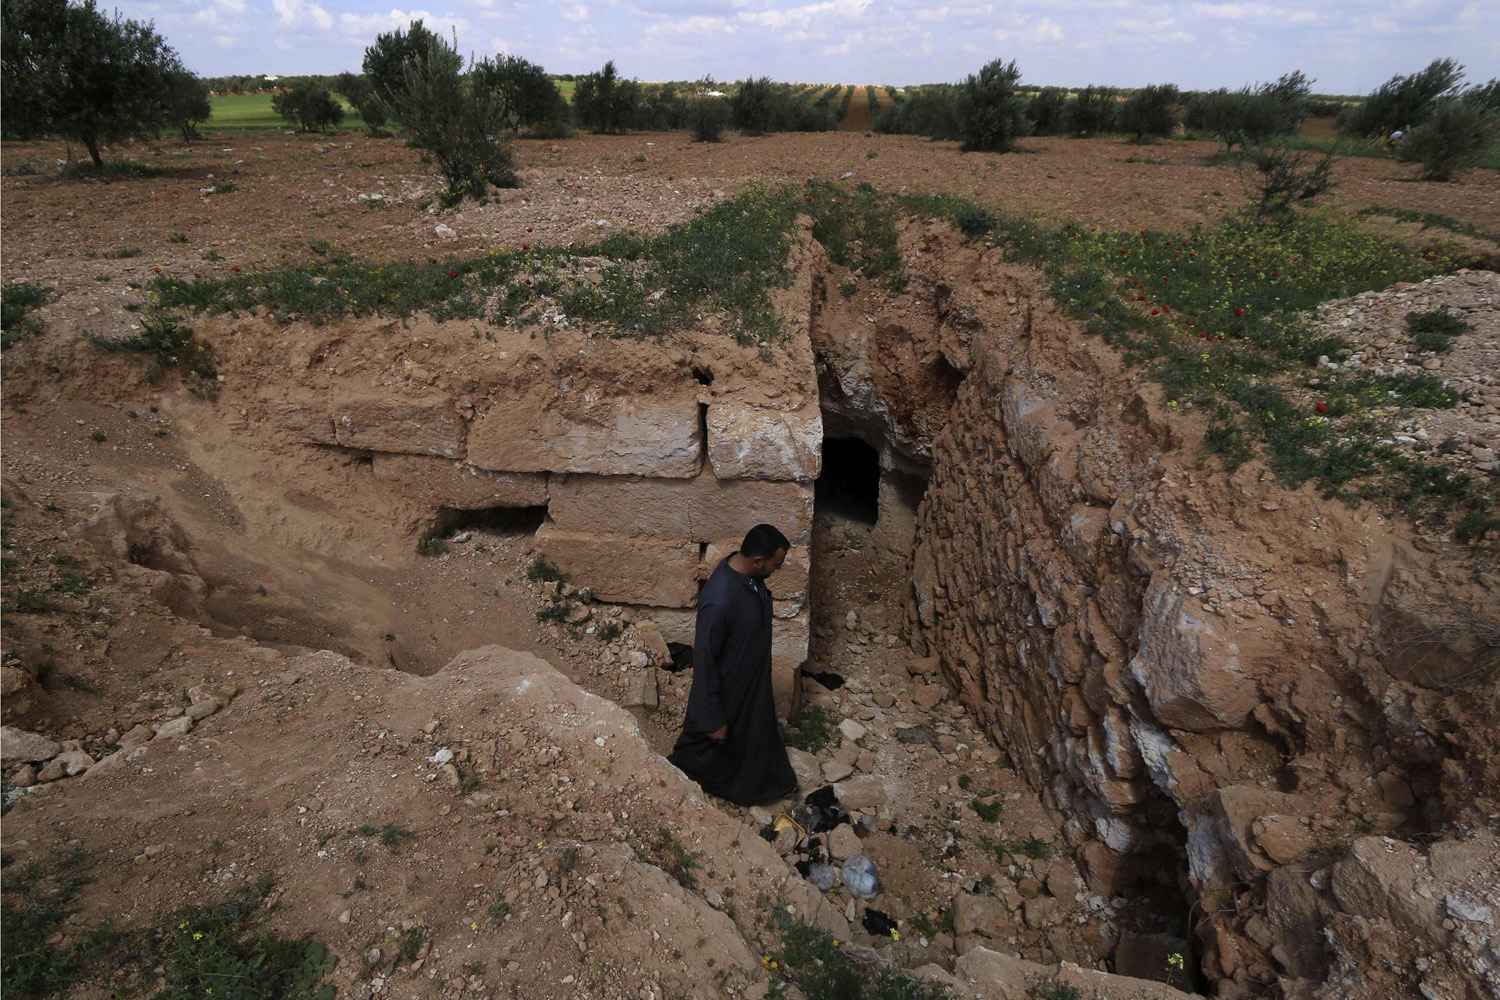 Apr. 9, 2014. A man enters an underground shelter in Idlib countryside. Residents dug underground shelters to hide in during shelling from forces loyal to President Bashar al-Assad.